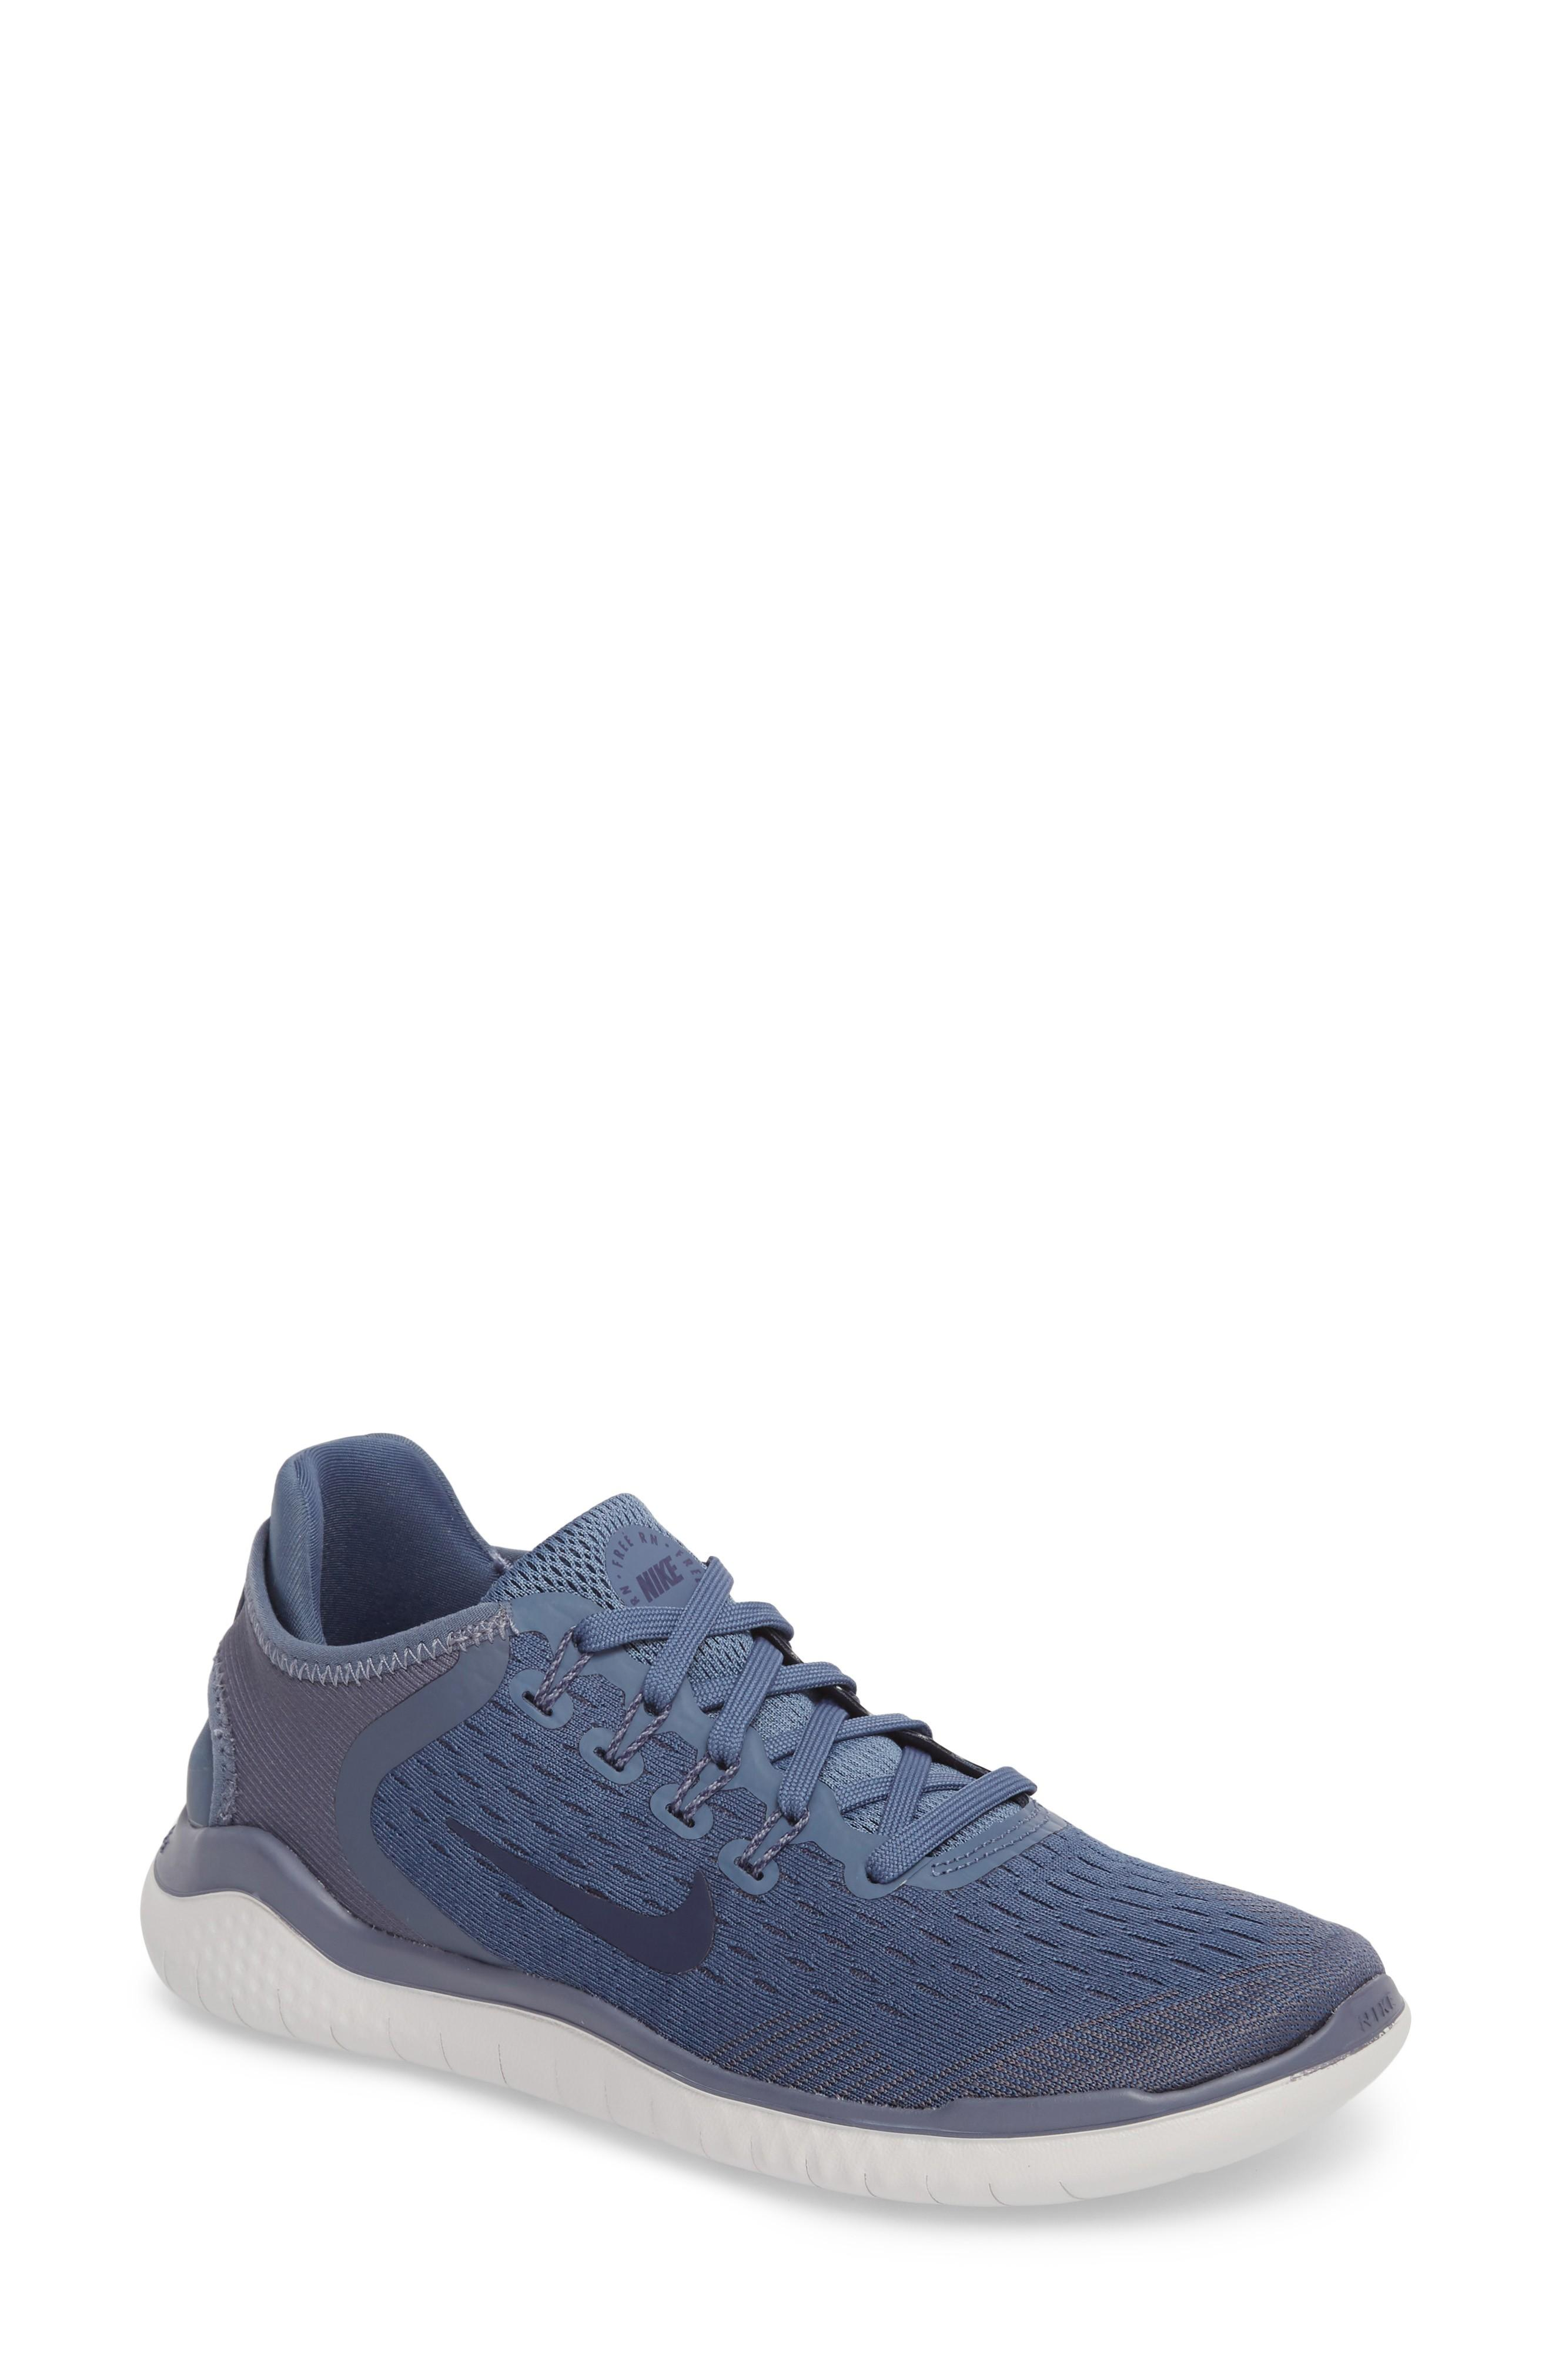 cheaper 22323 e2136 Nike Women s Free Rn 2018 Lace Up Sneakers In Diffused Blue  Neutral Indigo